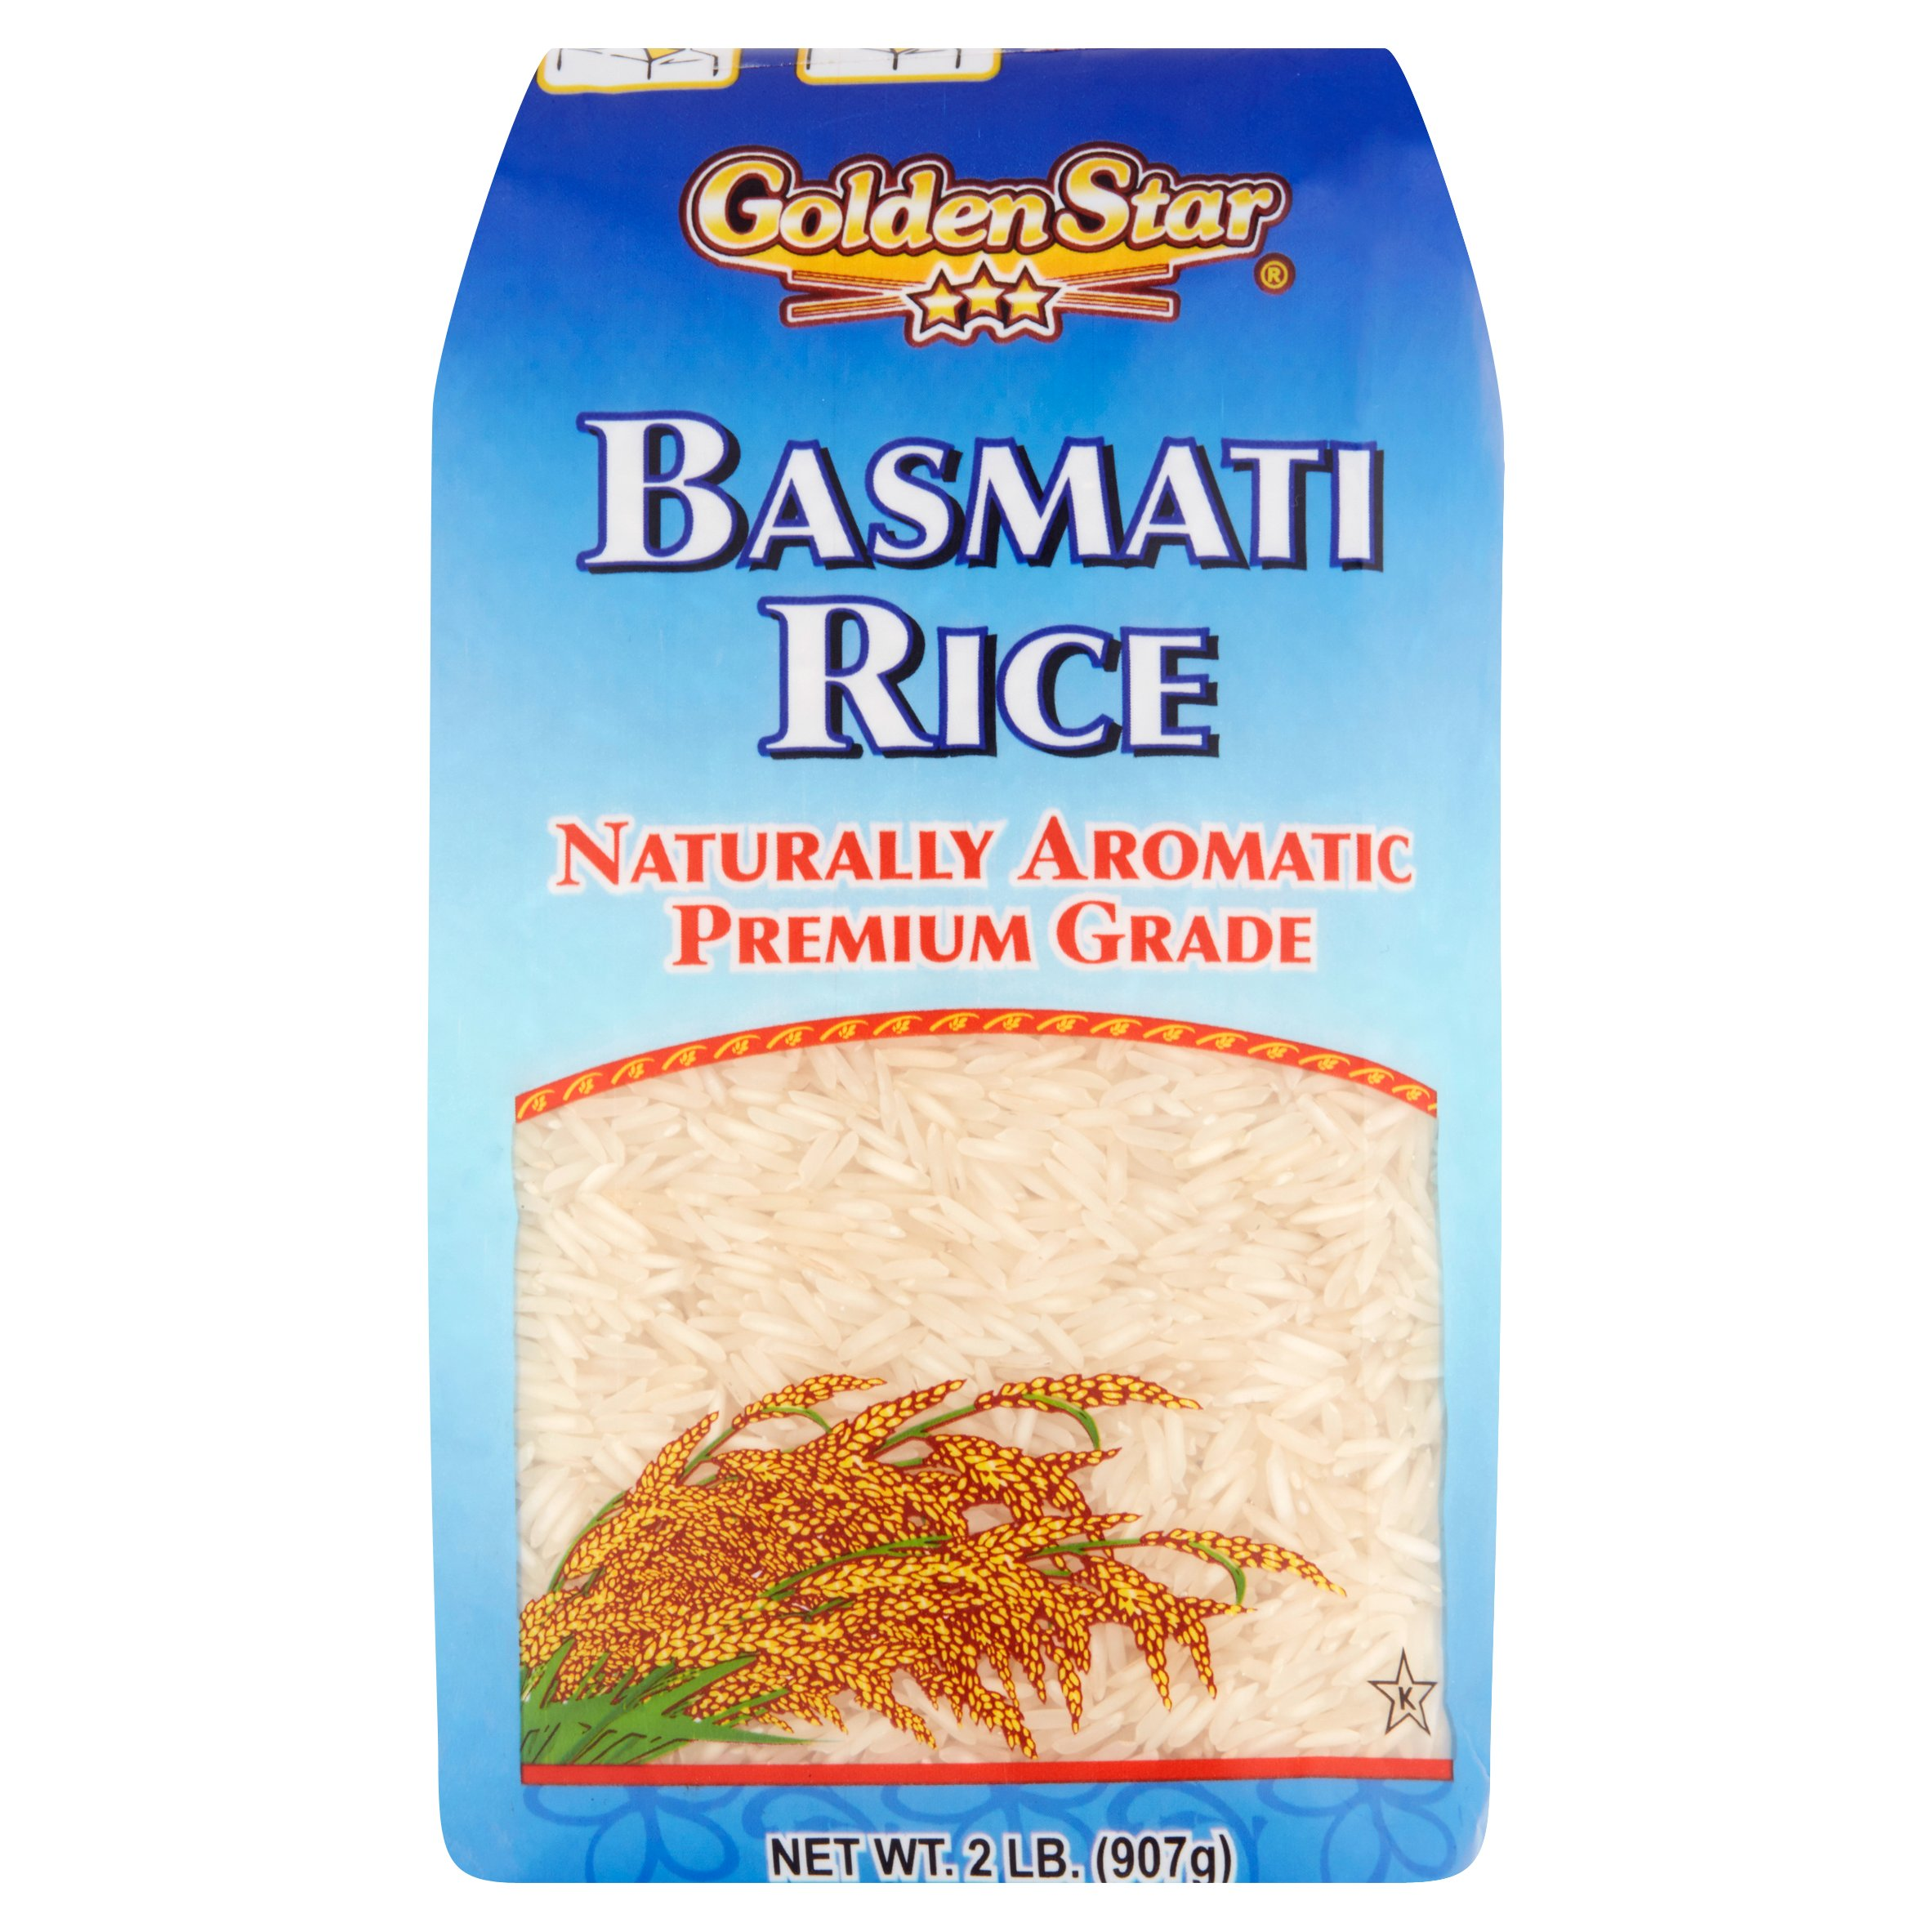 Golden Star Basmati Rice, 2 lbs by Golden Star Trading, Inc.